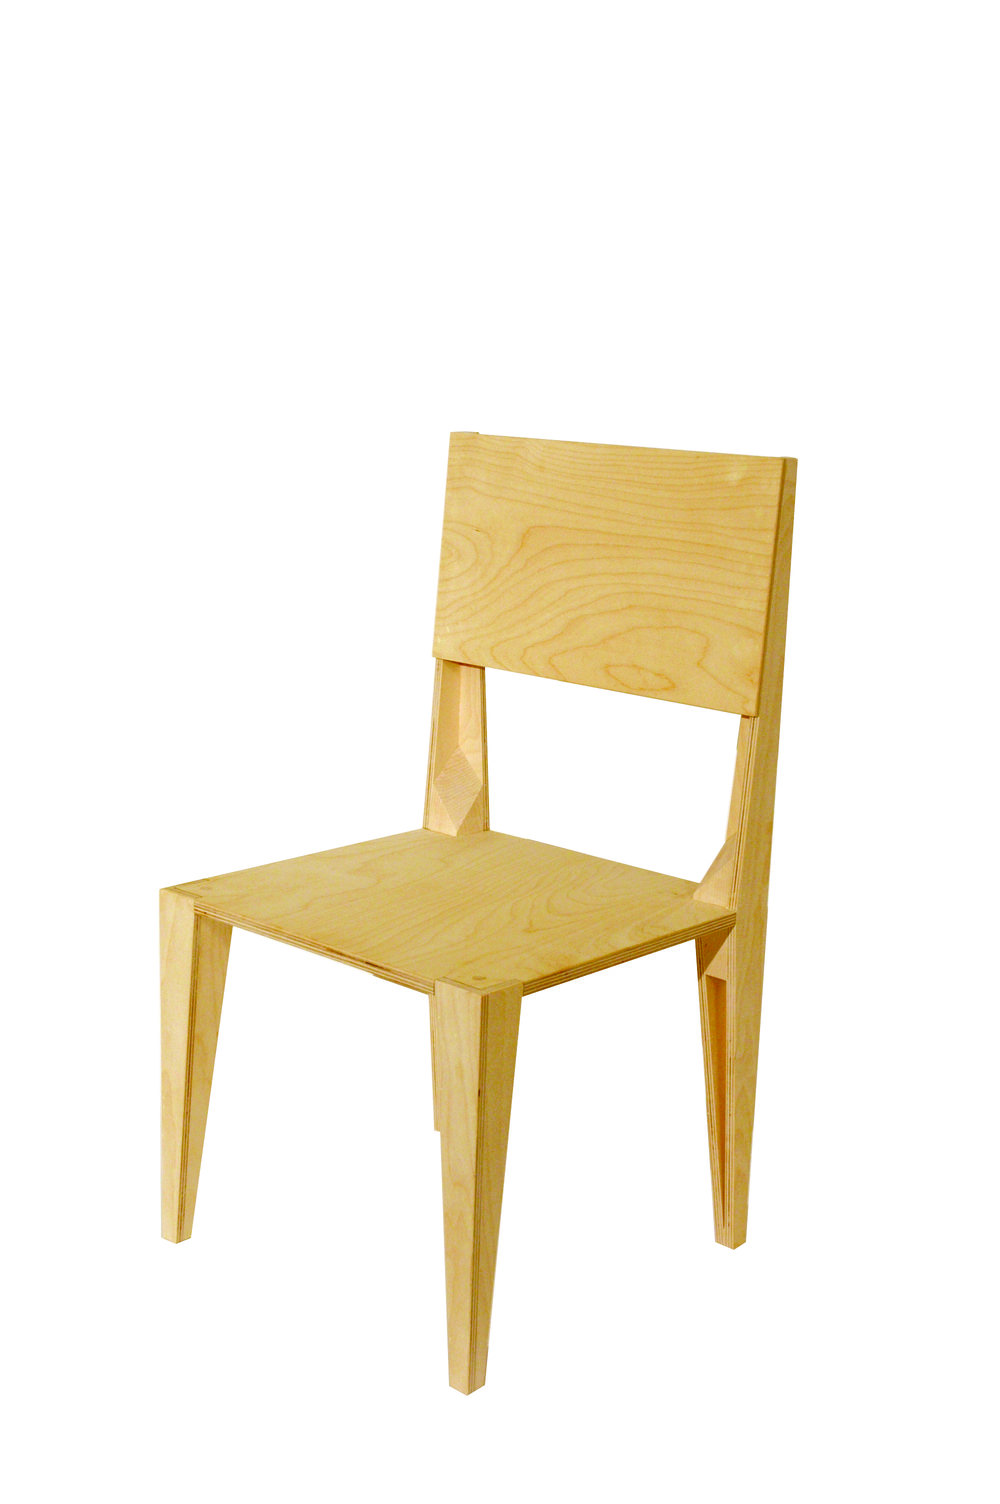 Chair That Grows With Your Child.jpg